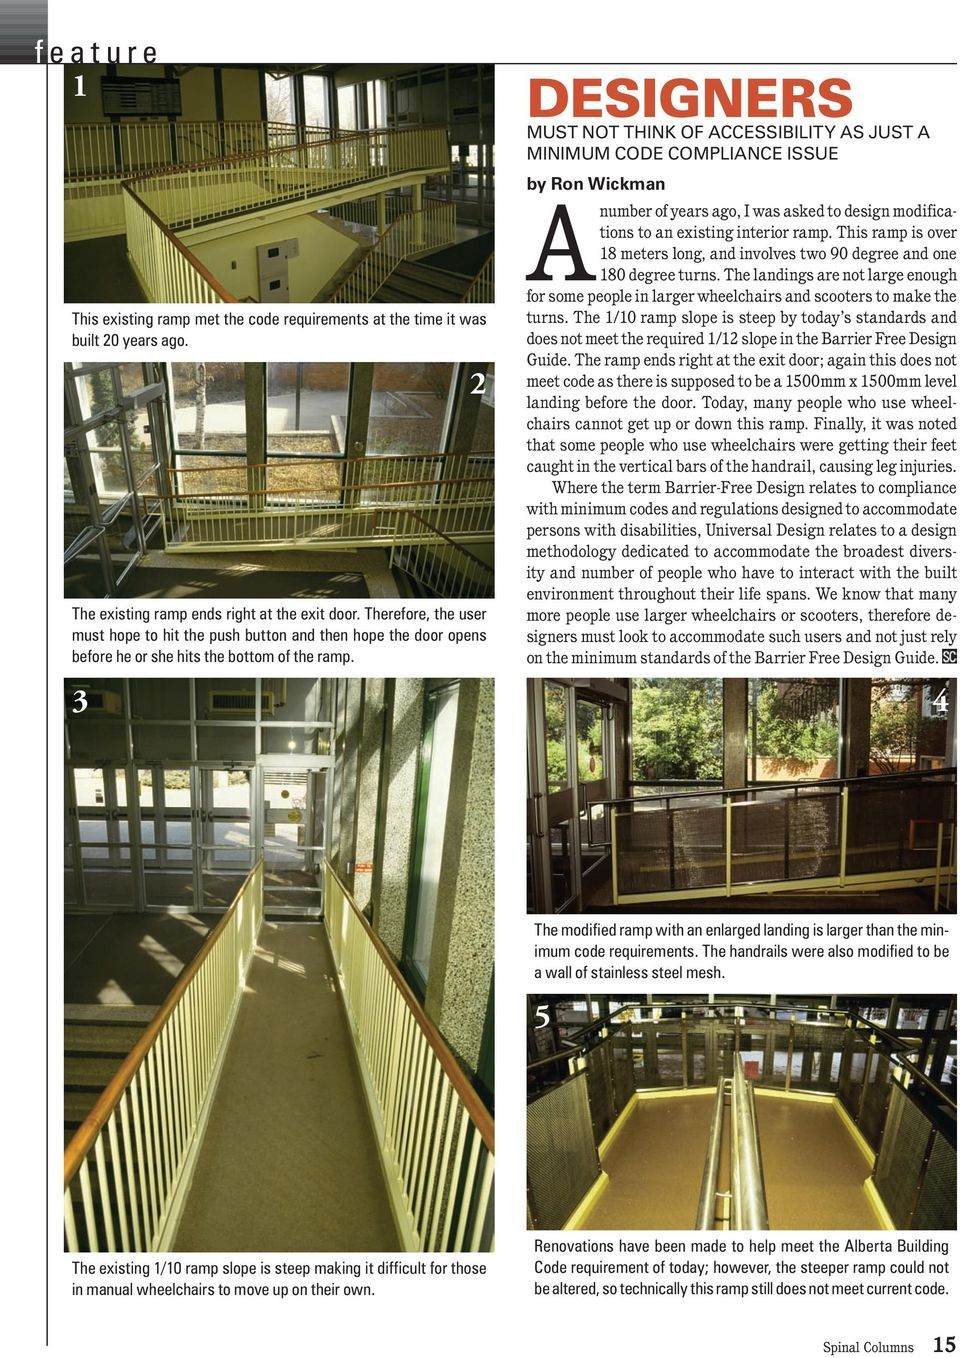 2 DESIGNERS MUST NOT THINK OF ACCESSIBILITY AS JUST A MINIMUM CODE COMPLIANCE ISSUE by Ron Wickman A number of years ago, I was asked to design modifications to an existing interior ramp.